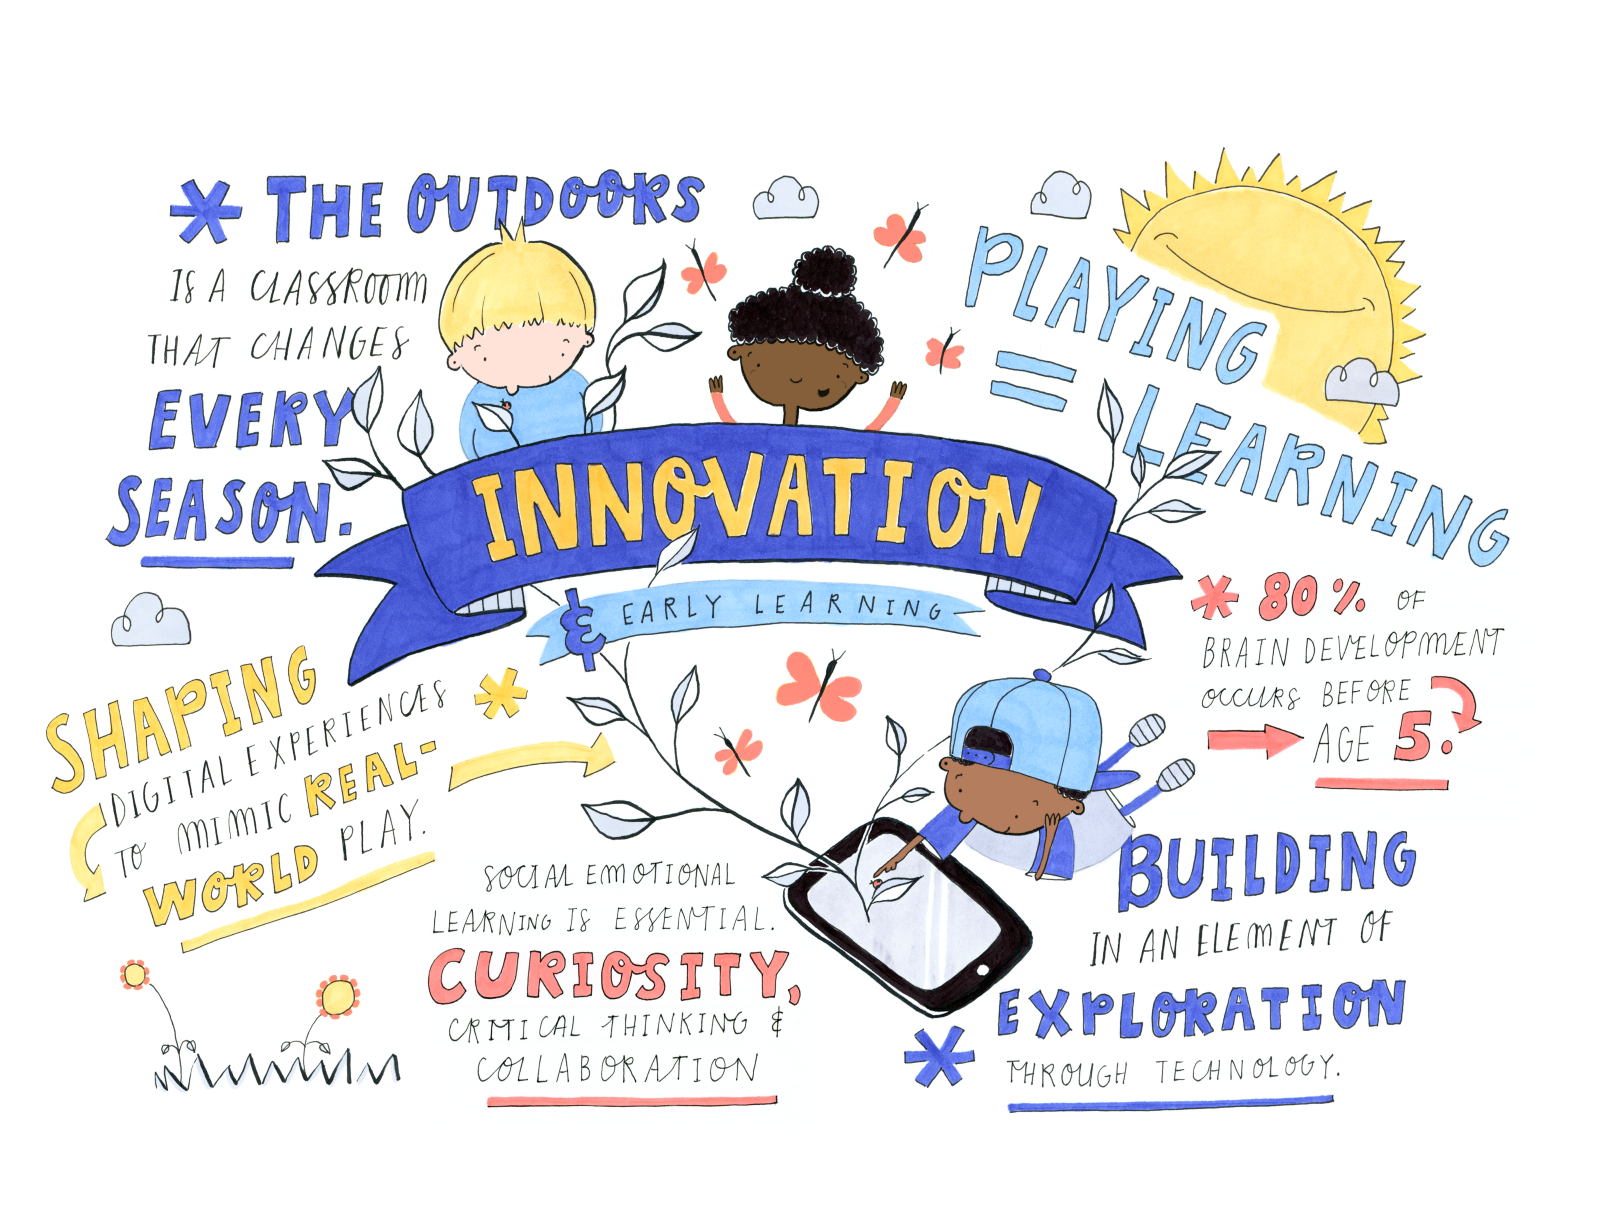 How Can Innovation In Early Learning Positively Impact Children In